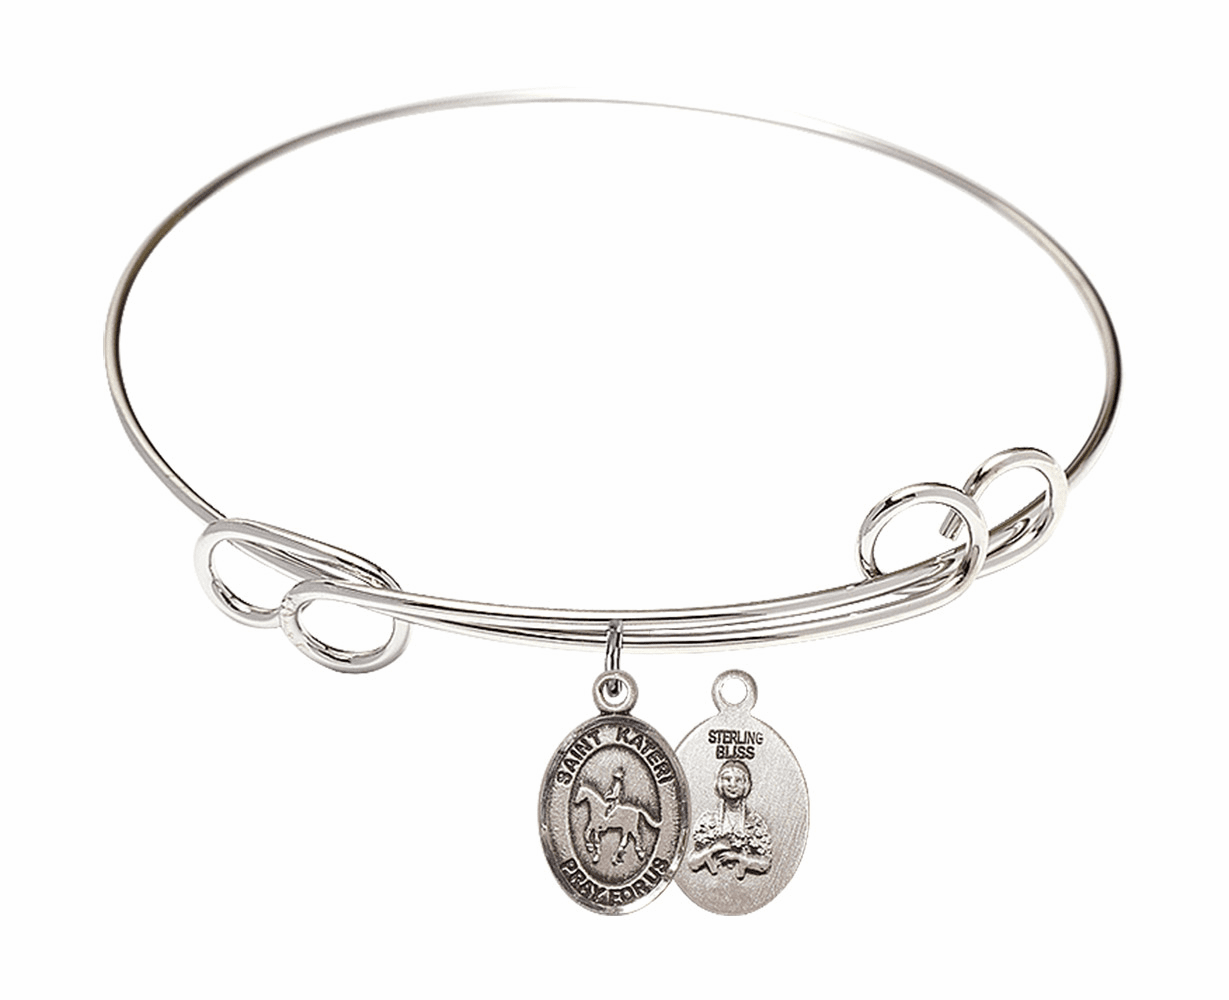 Round Loop St Kateri Tekakwitha Equestrian Bangle Charm Bracelet by Bliss